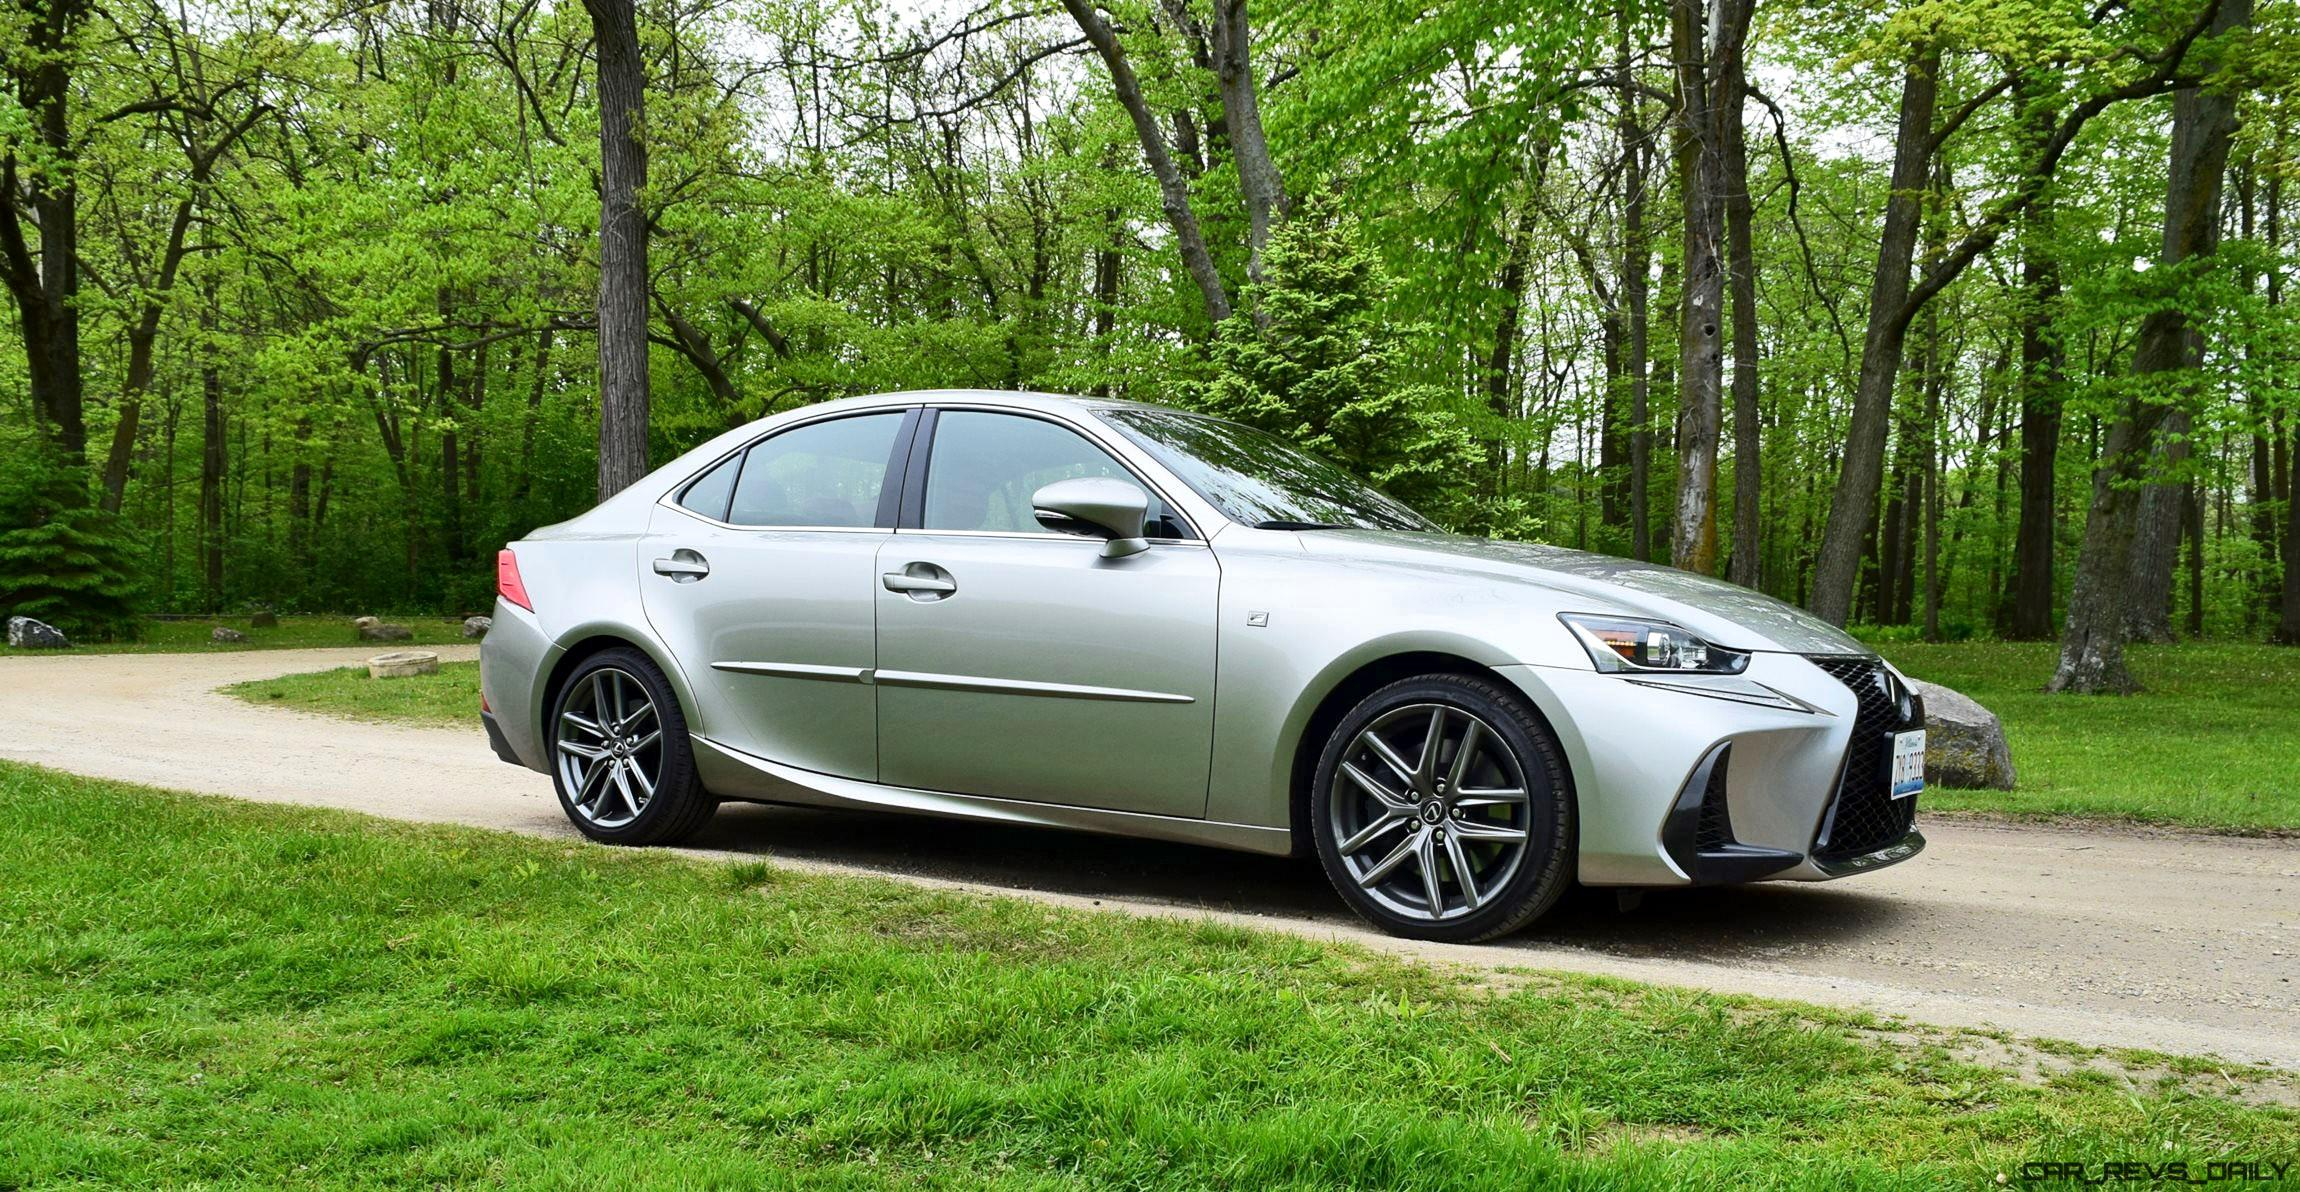 2017 Lexus IS350 F Sport RWD Road Test Review